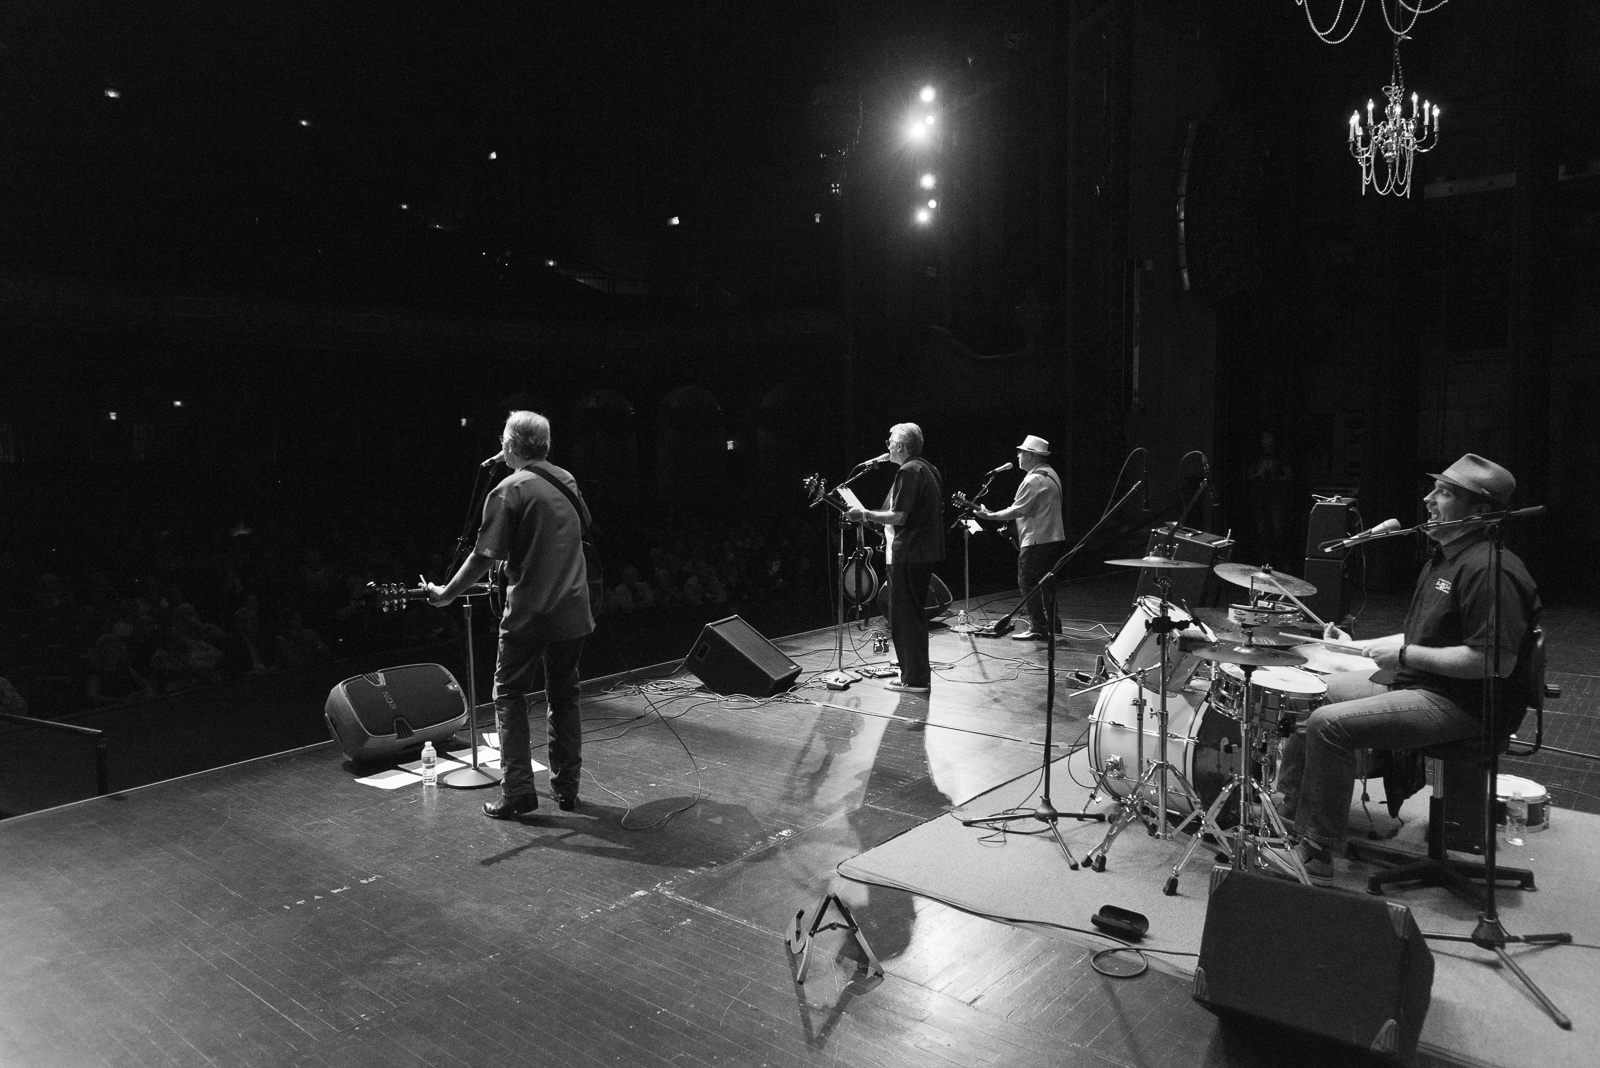 Sidestage view of The Road Crew's Performance at The Rialto.